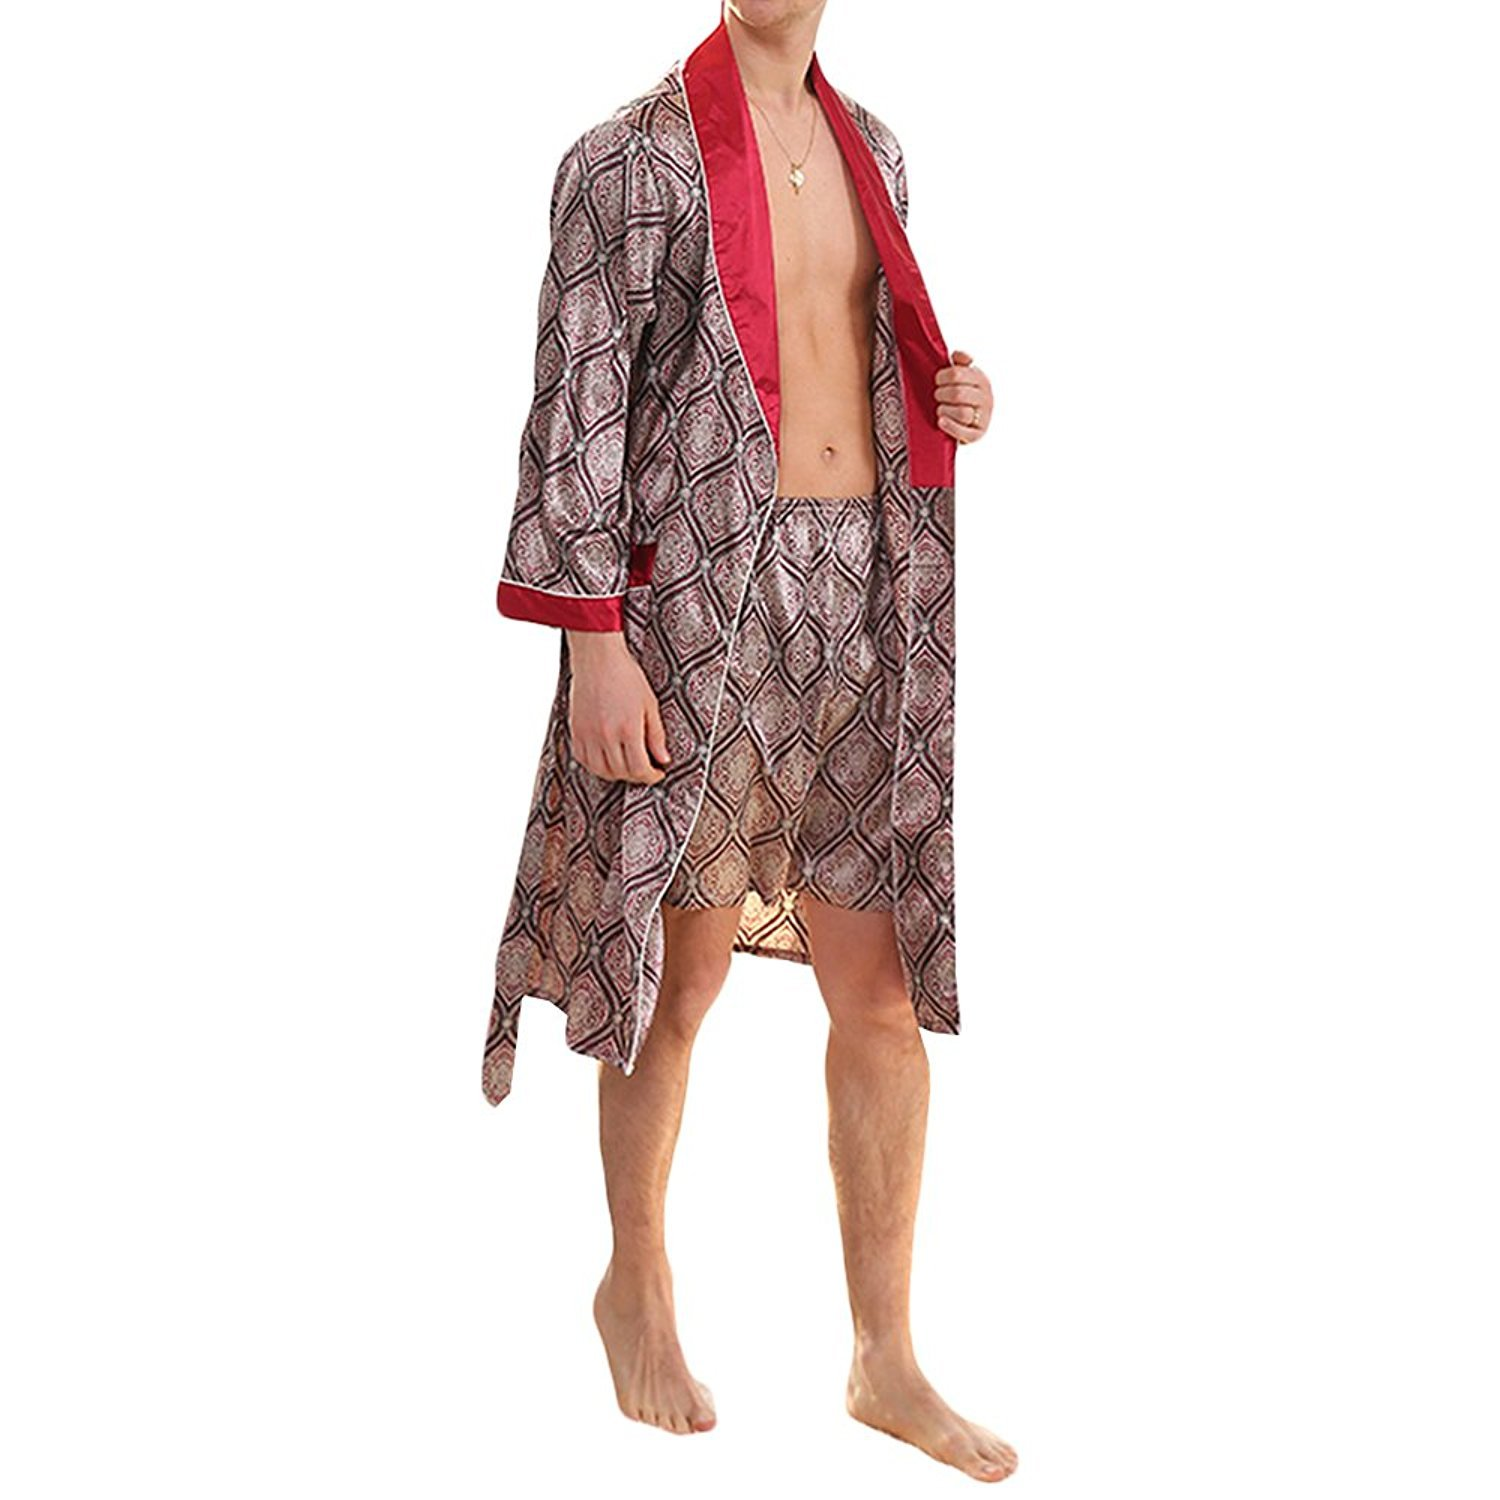 YIMANIE Men's Silk Satin Robe Luxurious Spa Long Sleeve House Kimono Nightwear Bathrobe,Red,2XL